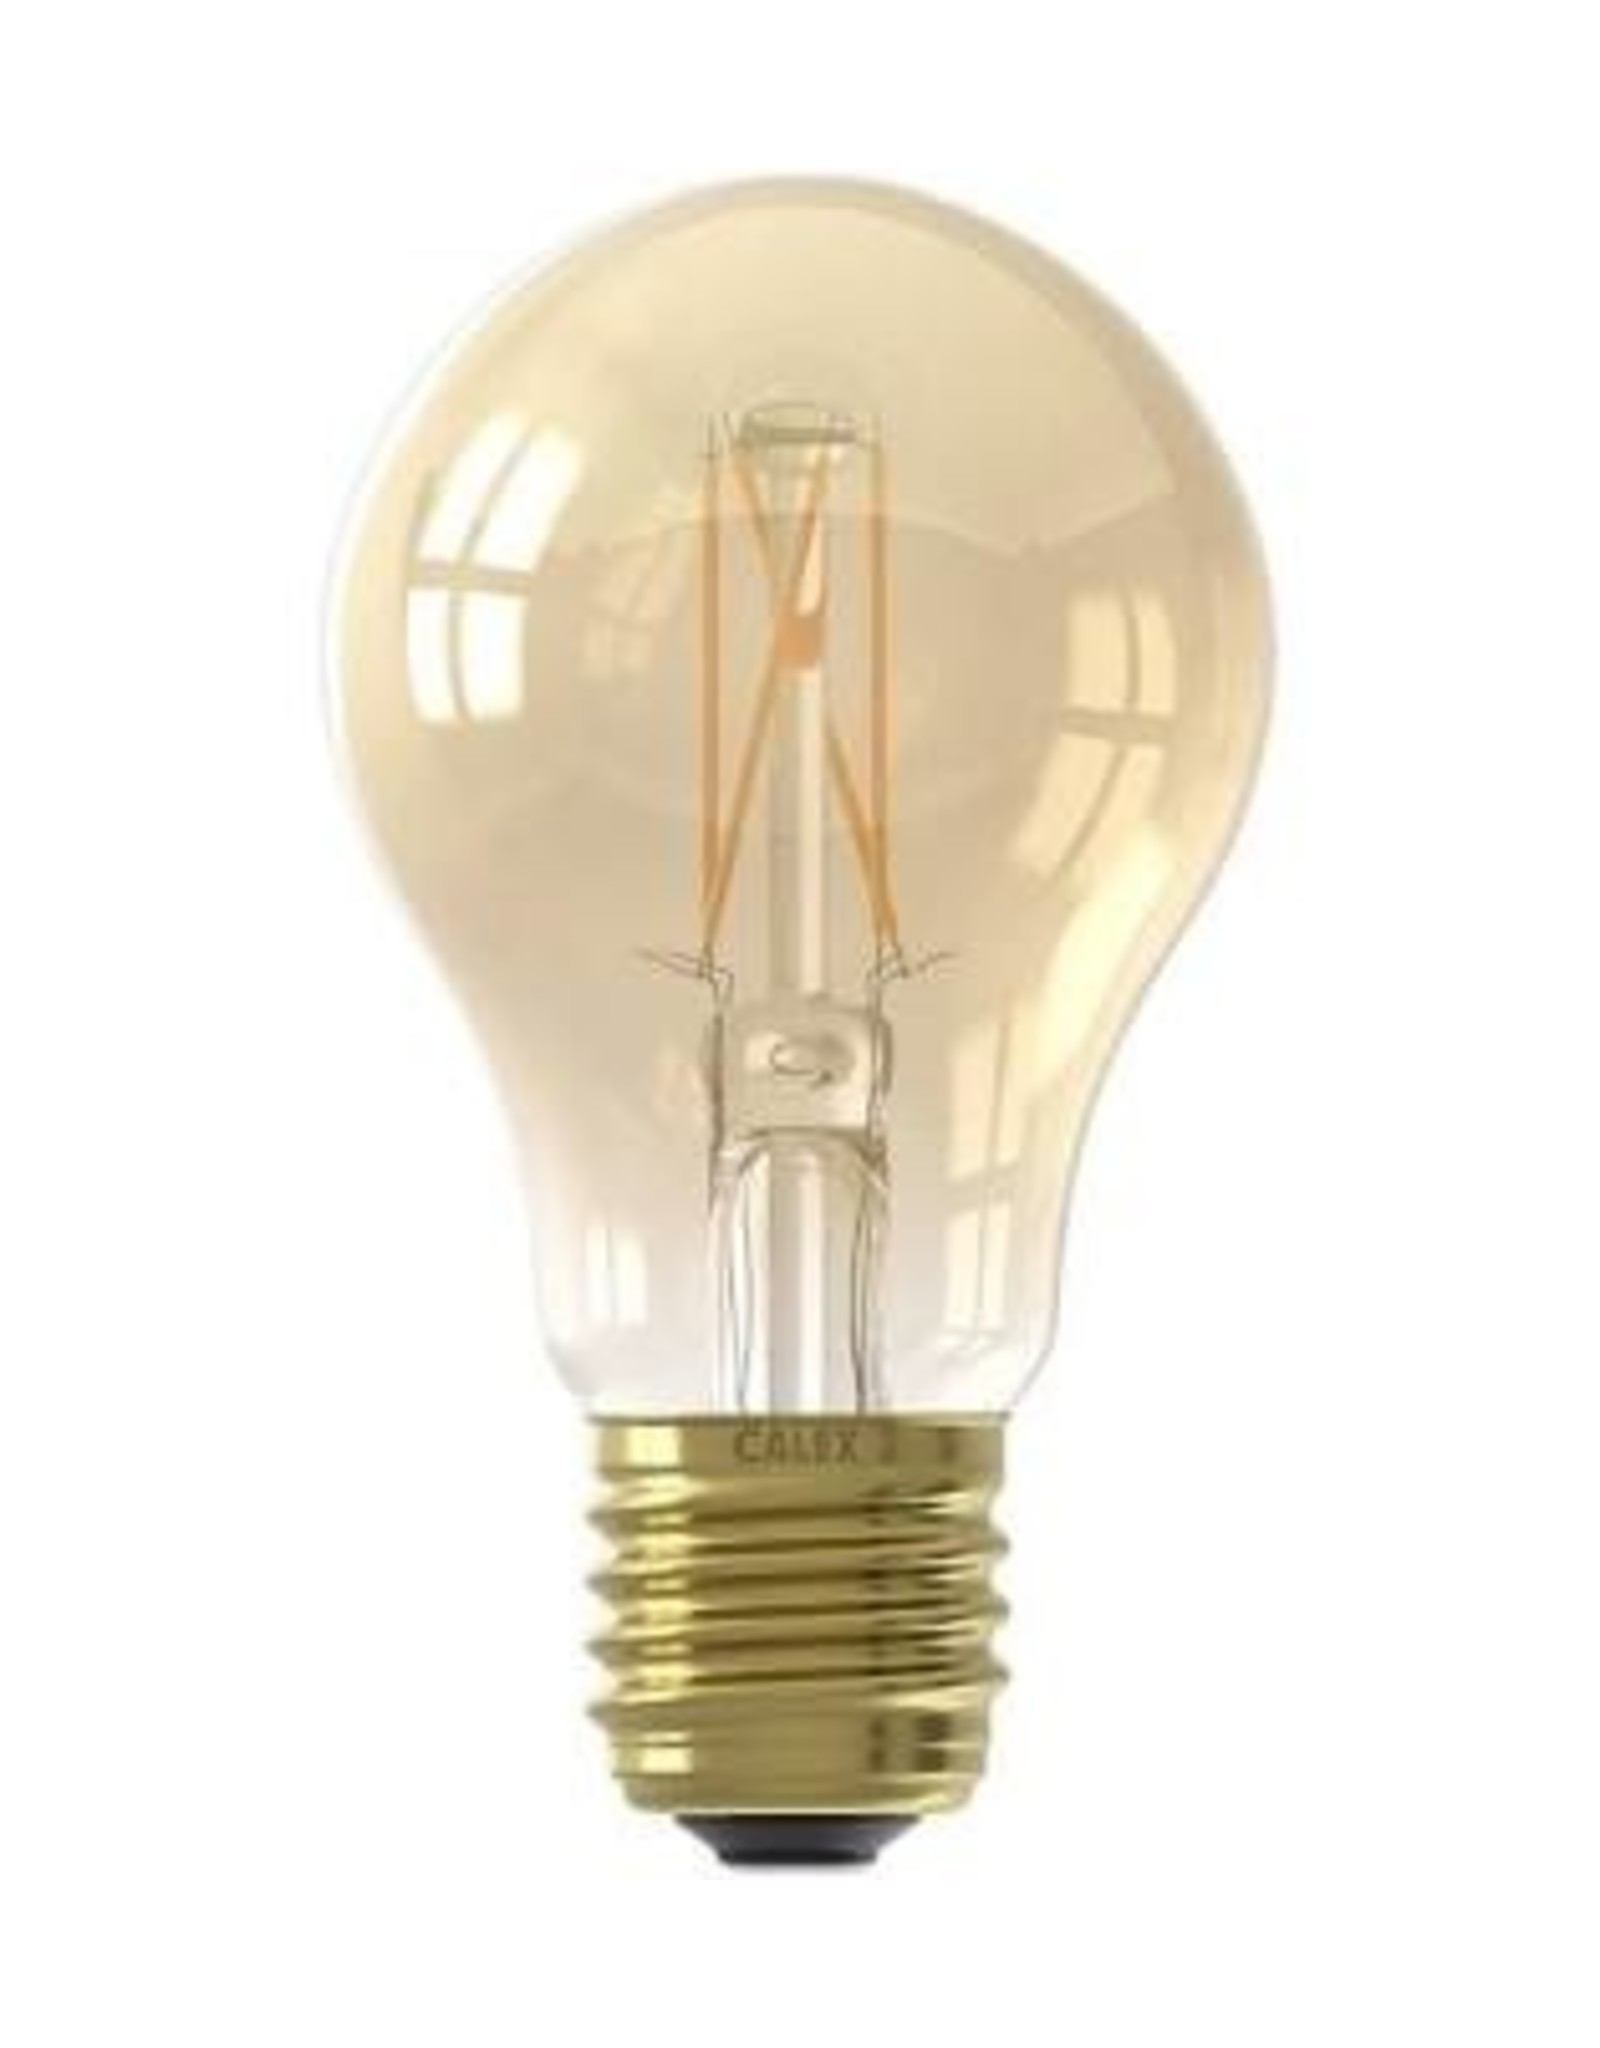 Calex LED Full Glass Filament GLS-lamp 220-240V 4W 310lm E27 A60, Gold 2100K CRI80 Dimmable, energy label A+